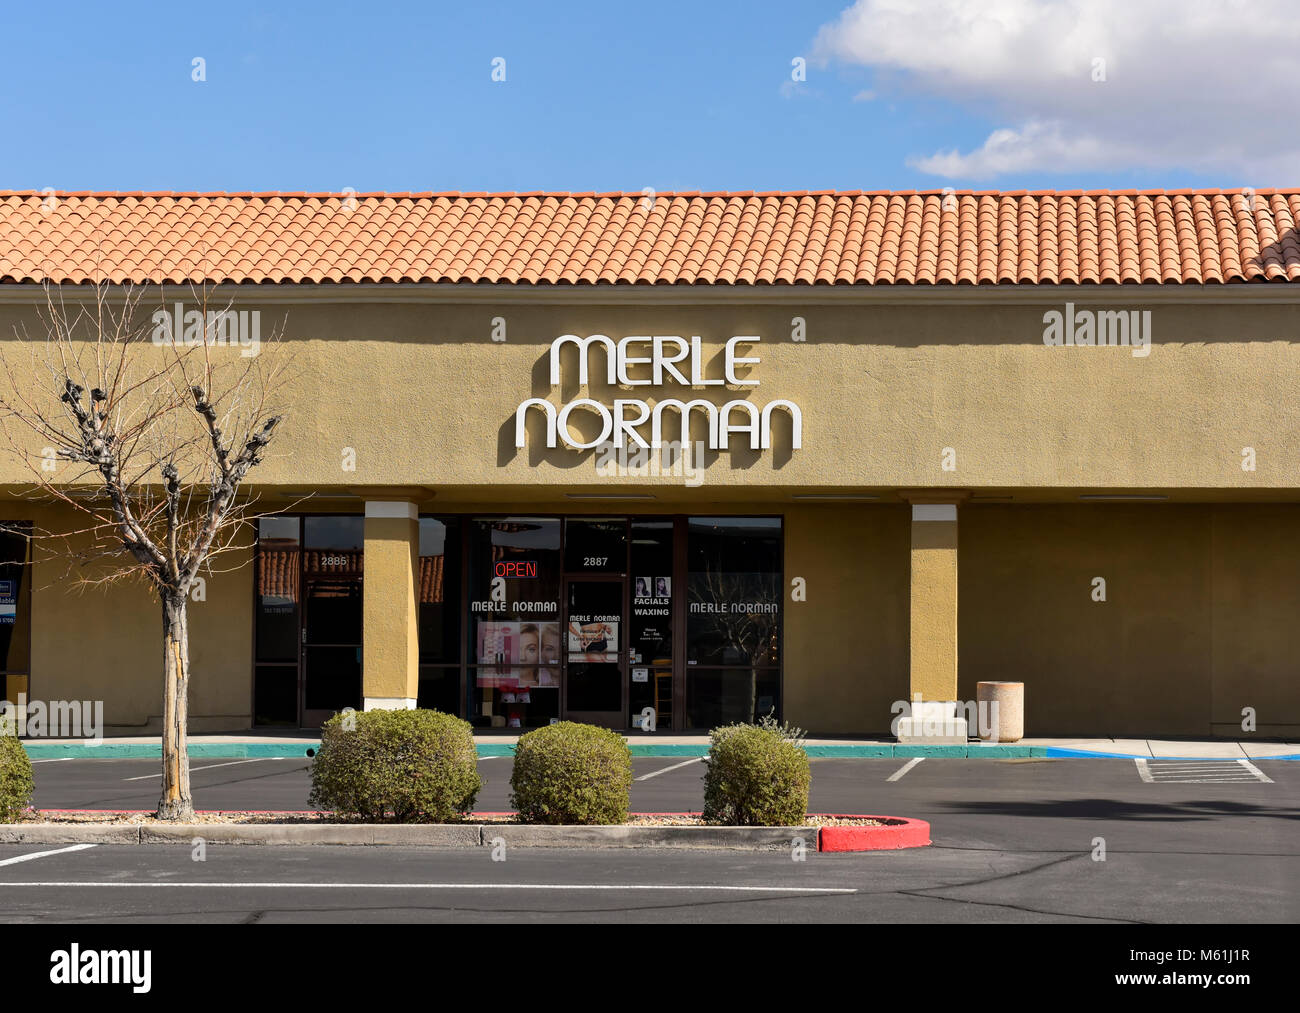 Merle Norman cosmetic store, Henderson Nevada strip mall. - Stock Image